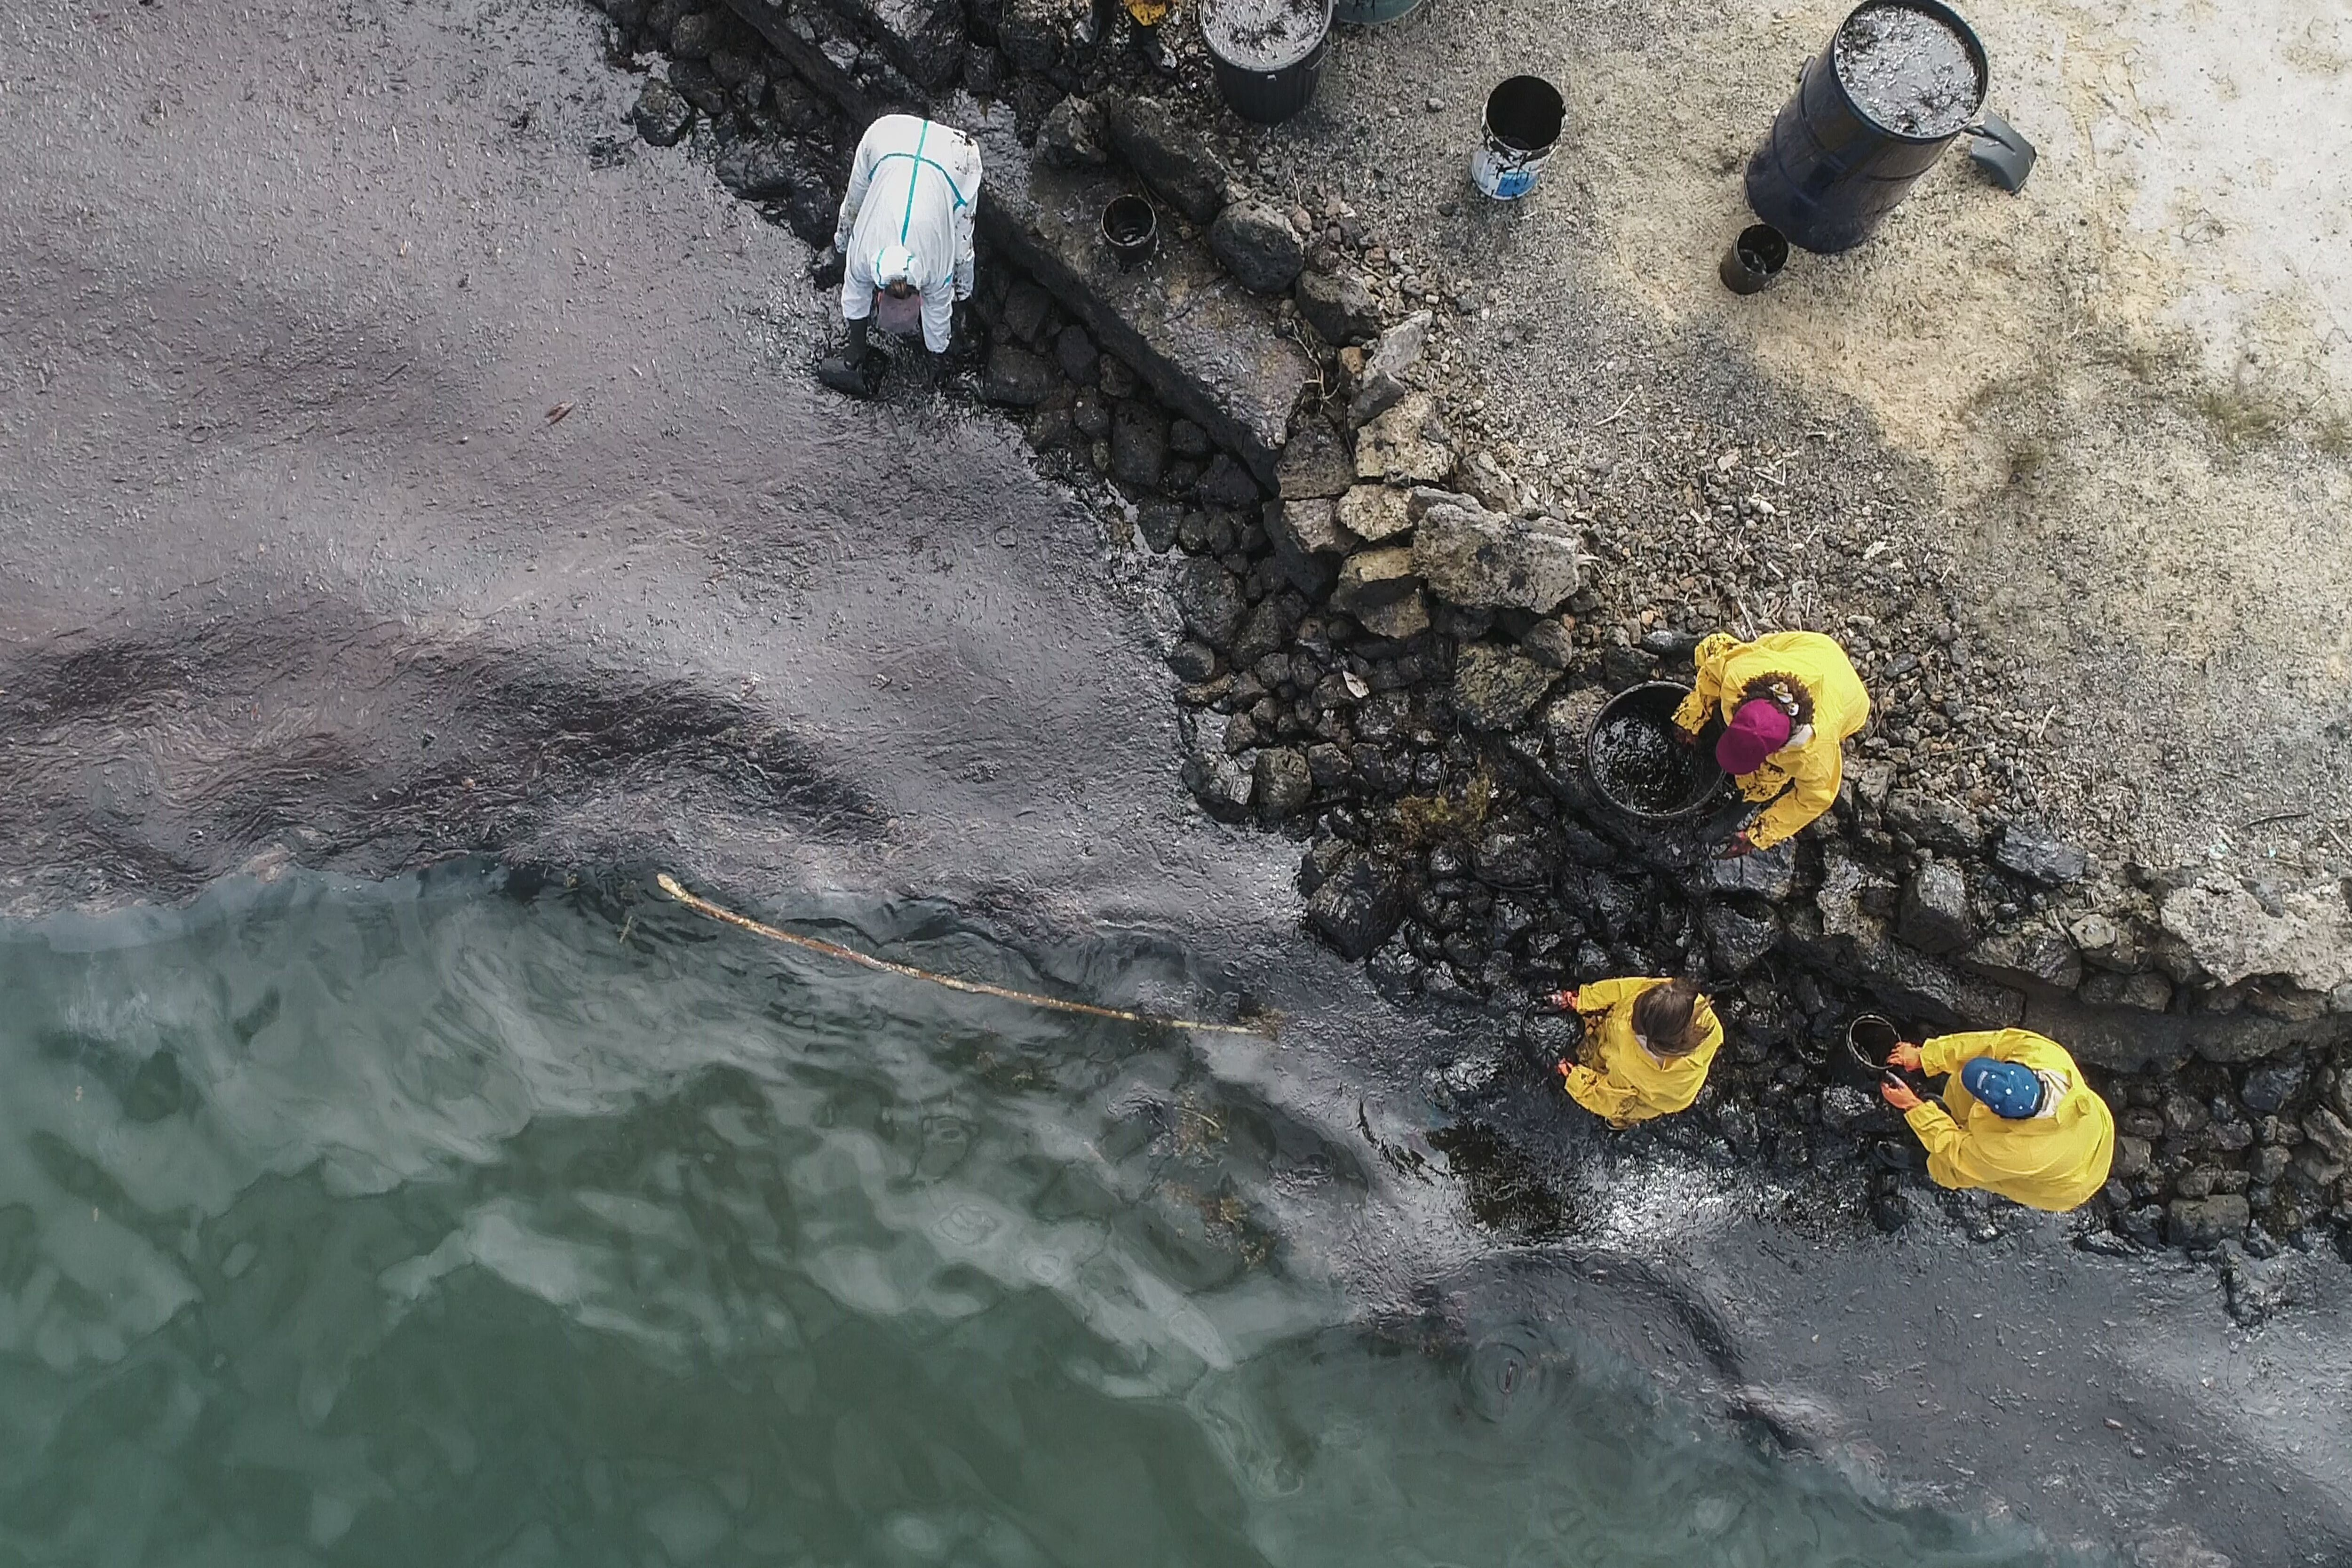 People scoop leaked oil from the MV Wakashio bulk carrier.